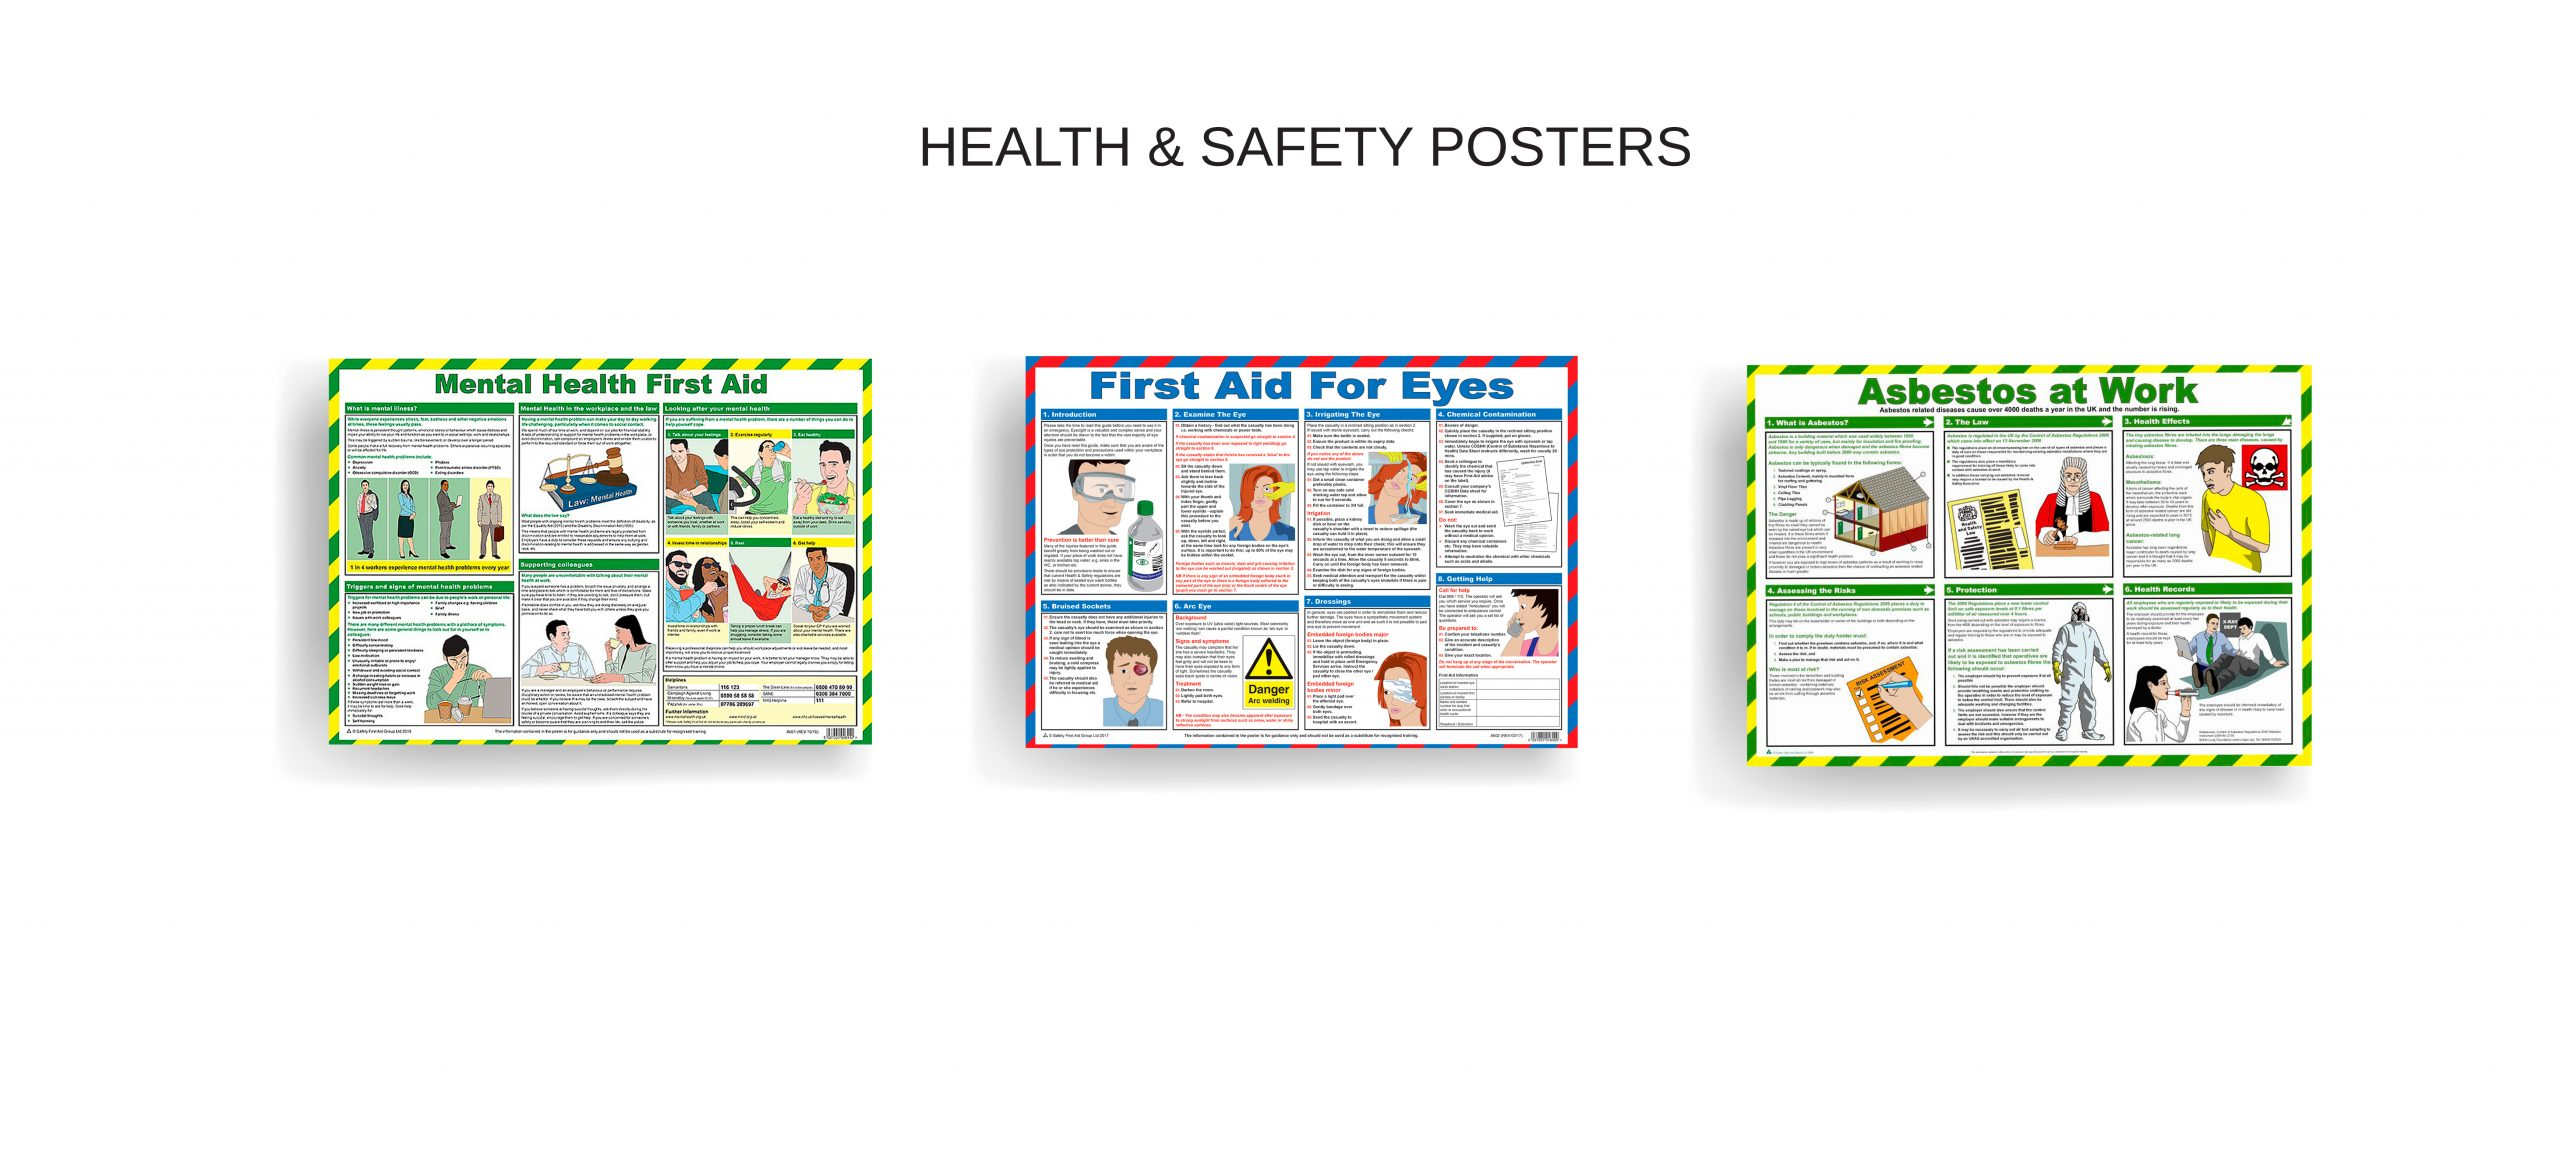 Health and safety posters Norfolk Fakenham